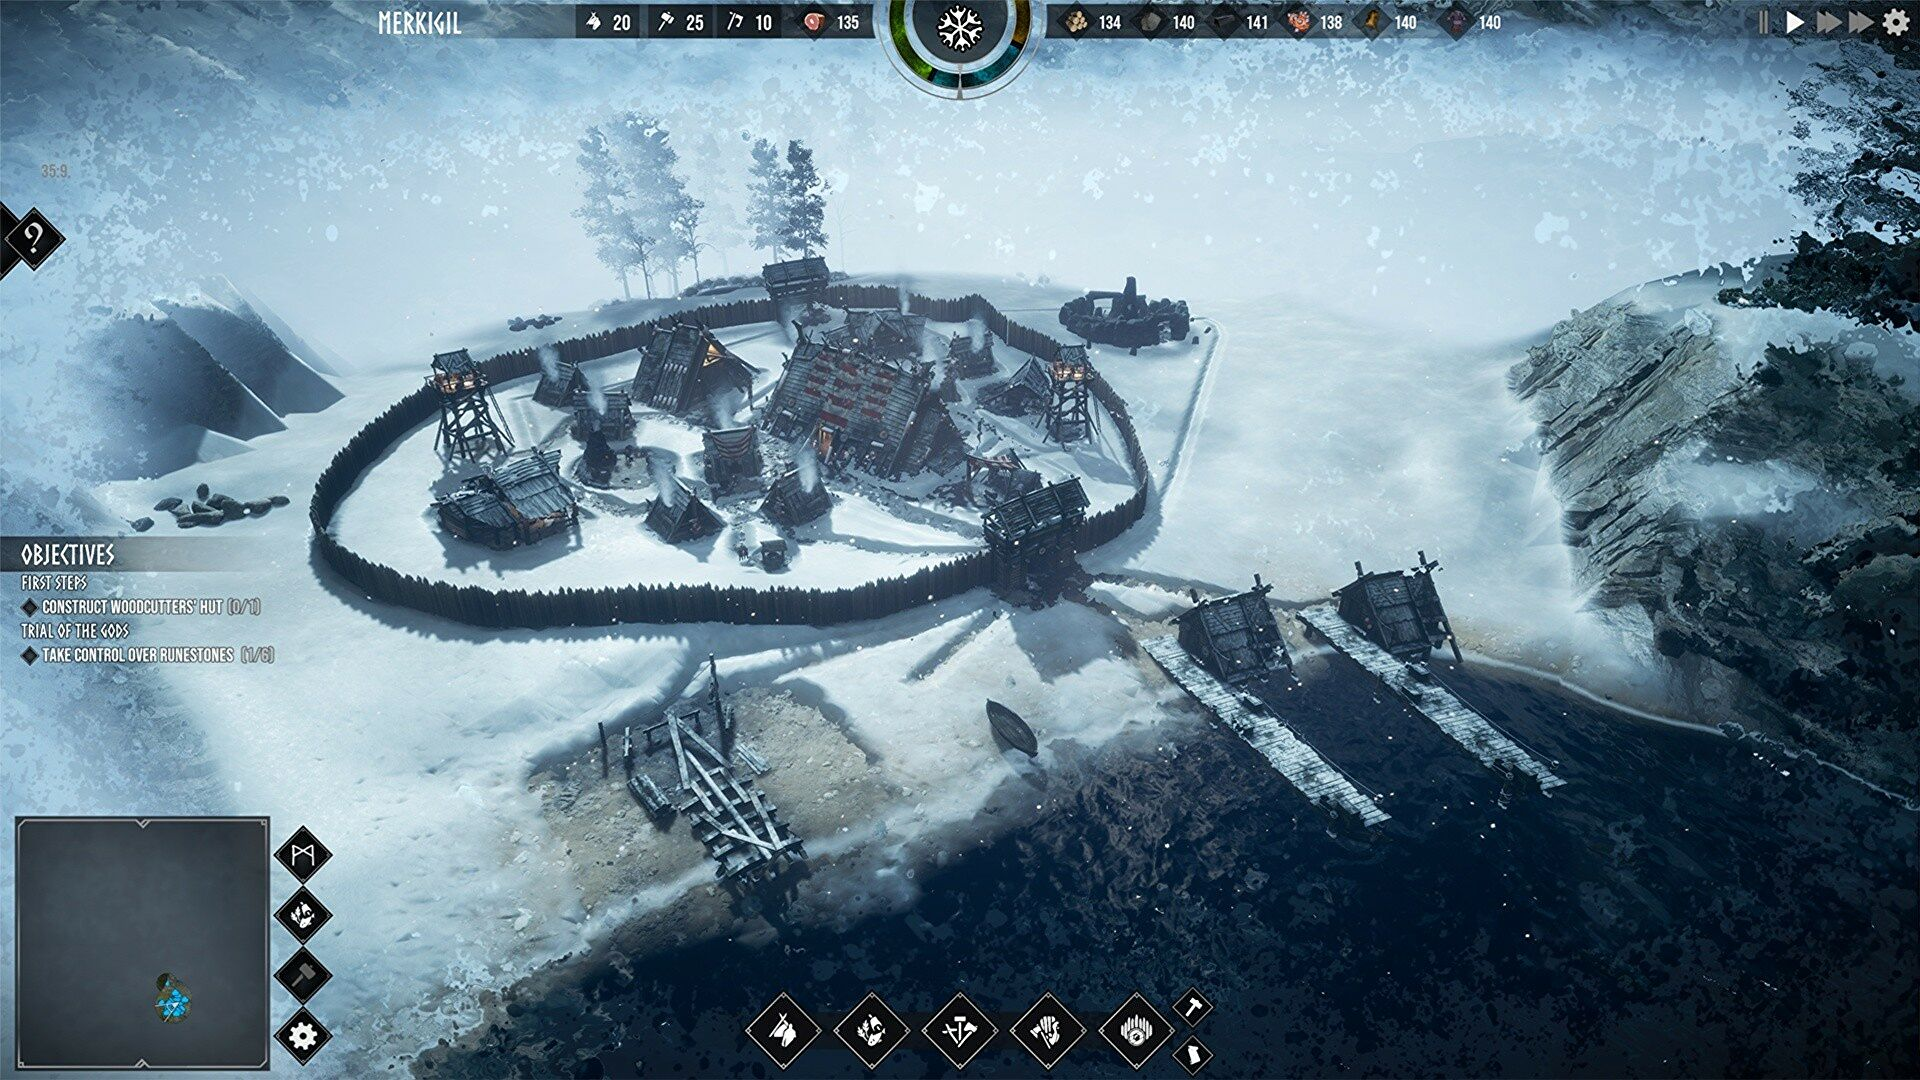 If you need more Norse, Frozenheim is a viking city builder RTS